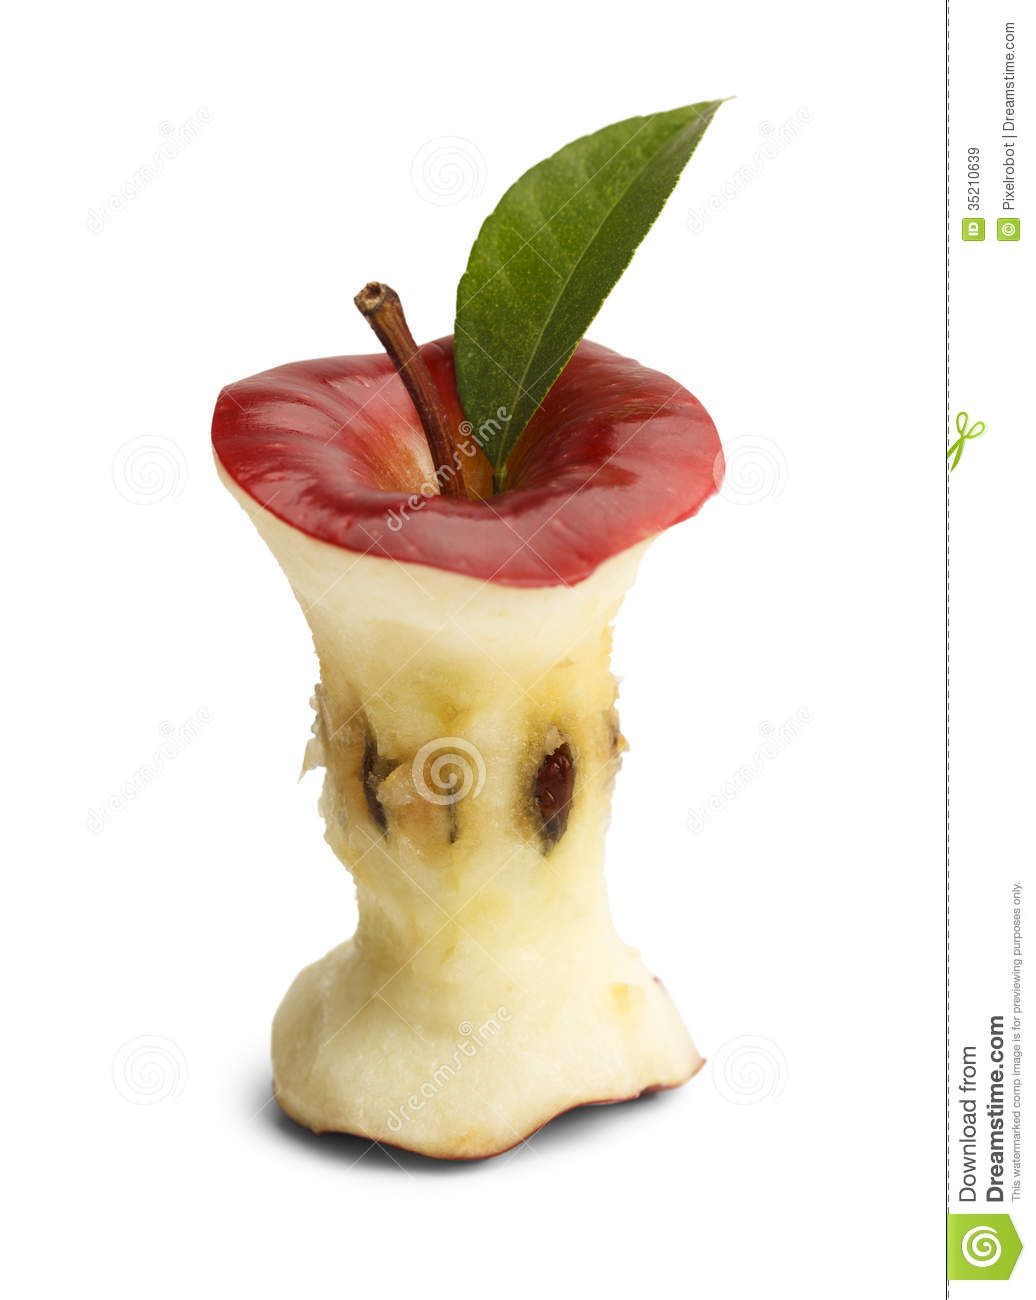 Green Apple Core Clipart Clipart Suggest